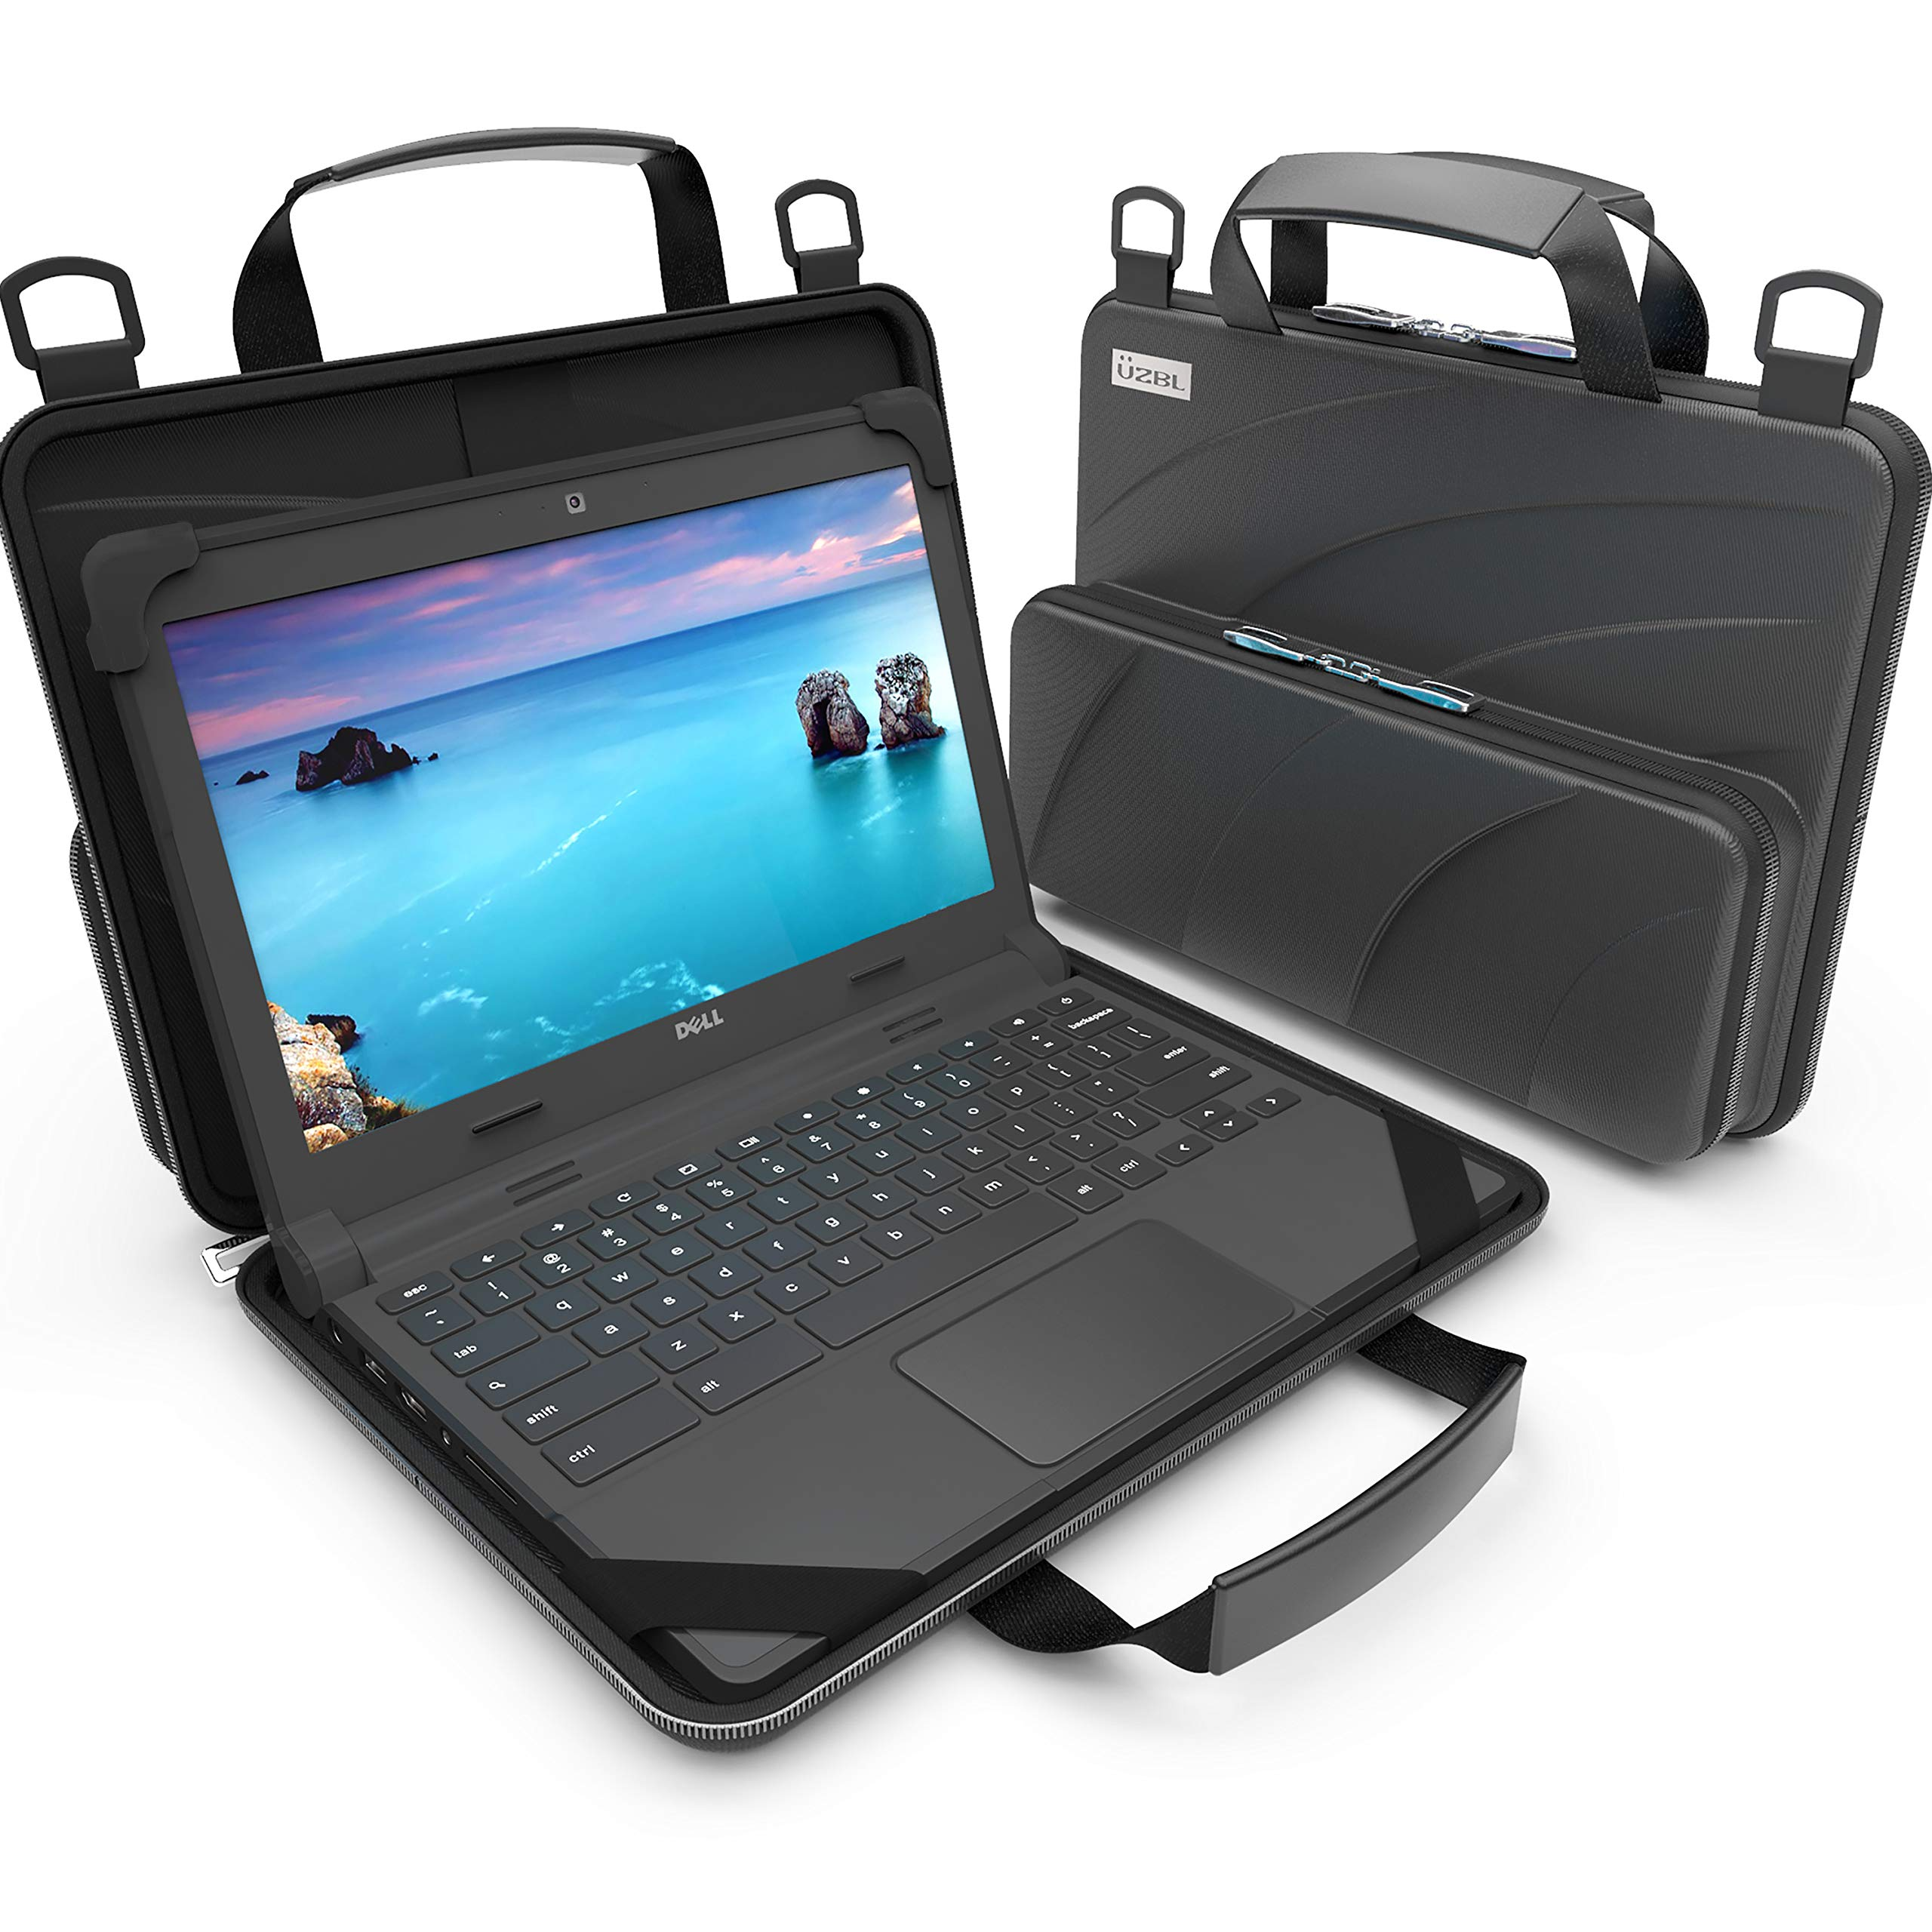 UZBL 11-11.6 inch Work-in Chromebook Laptop Case, Pouch and Shoulder Strap